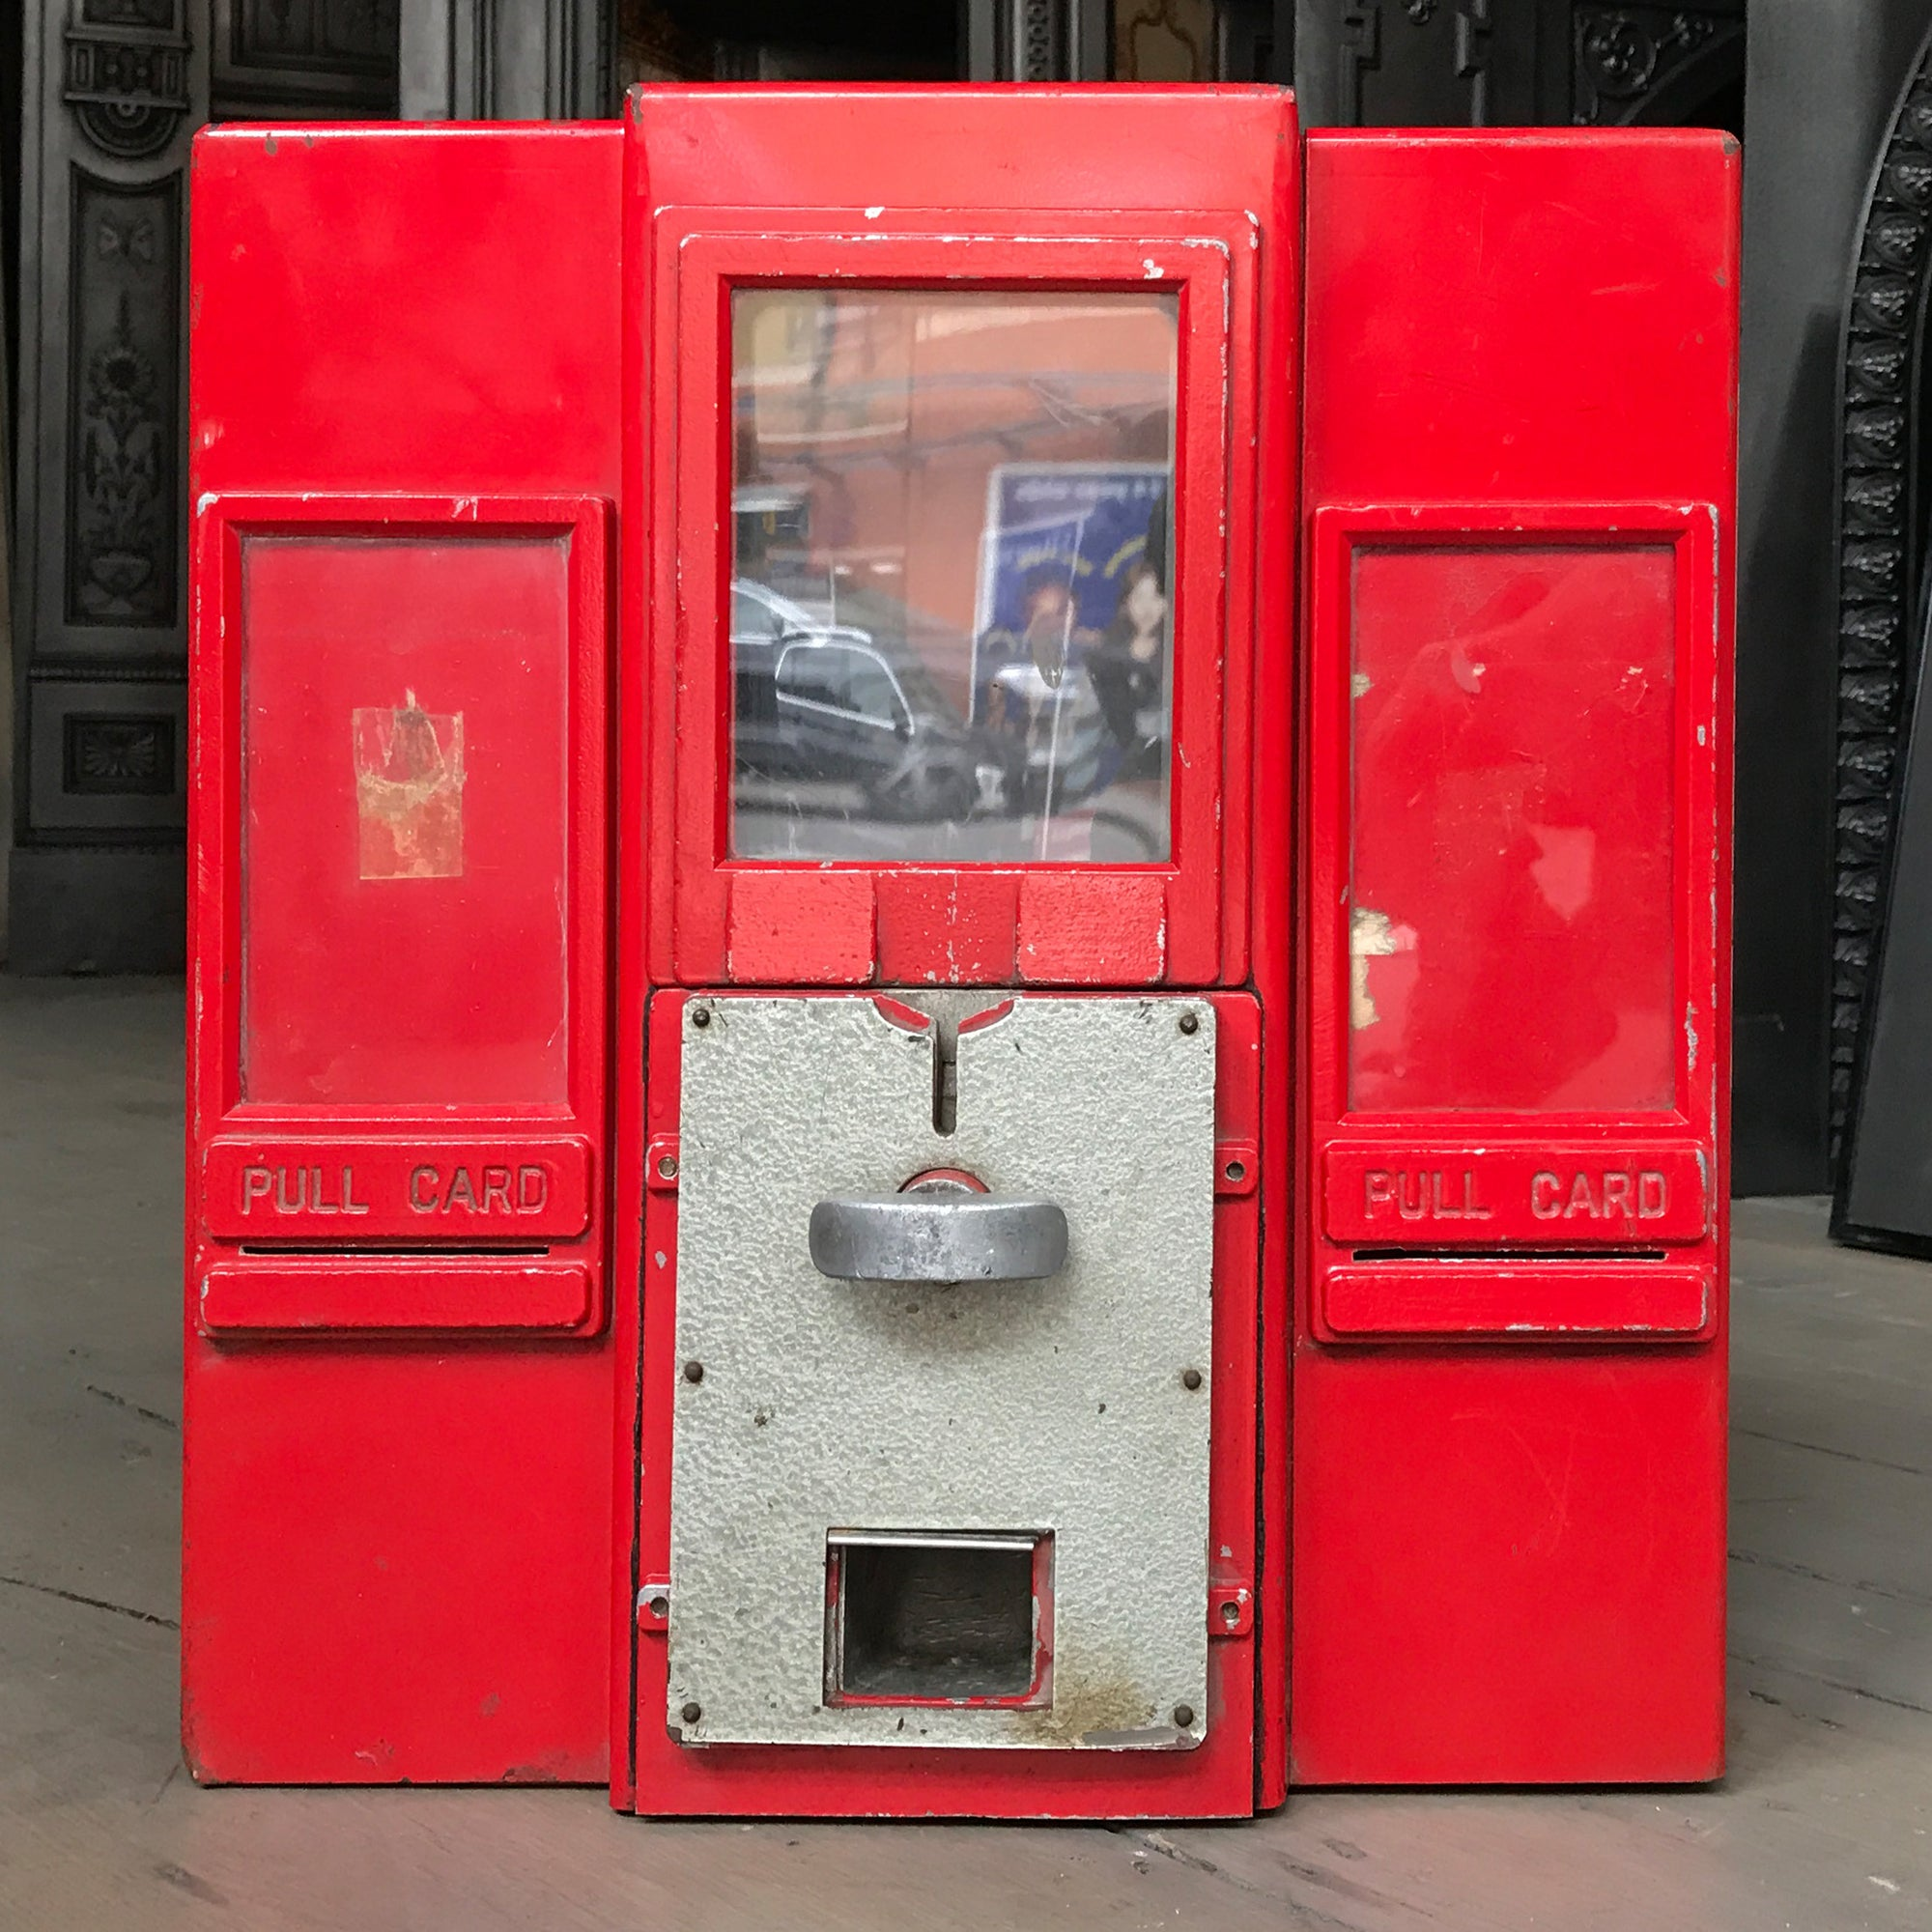 Reclaimed Vintage Postage Stamp Dispenser - architectural-forum